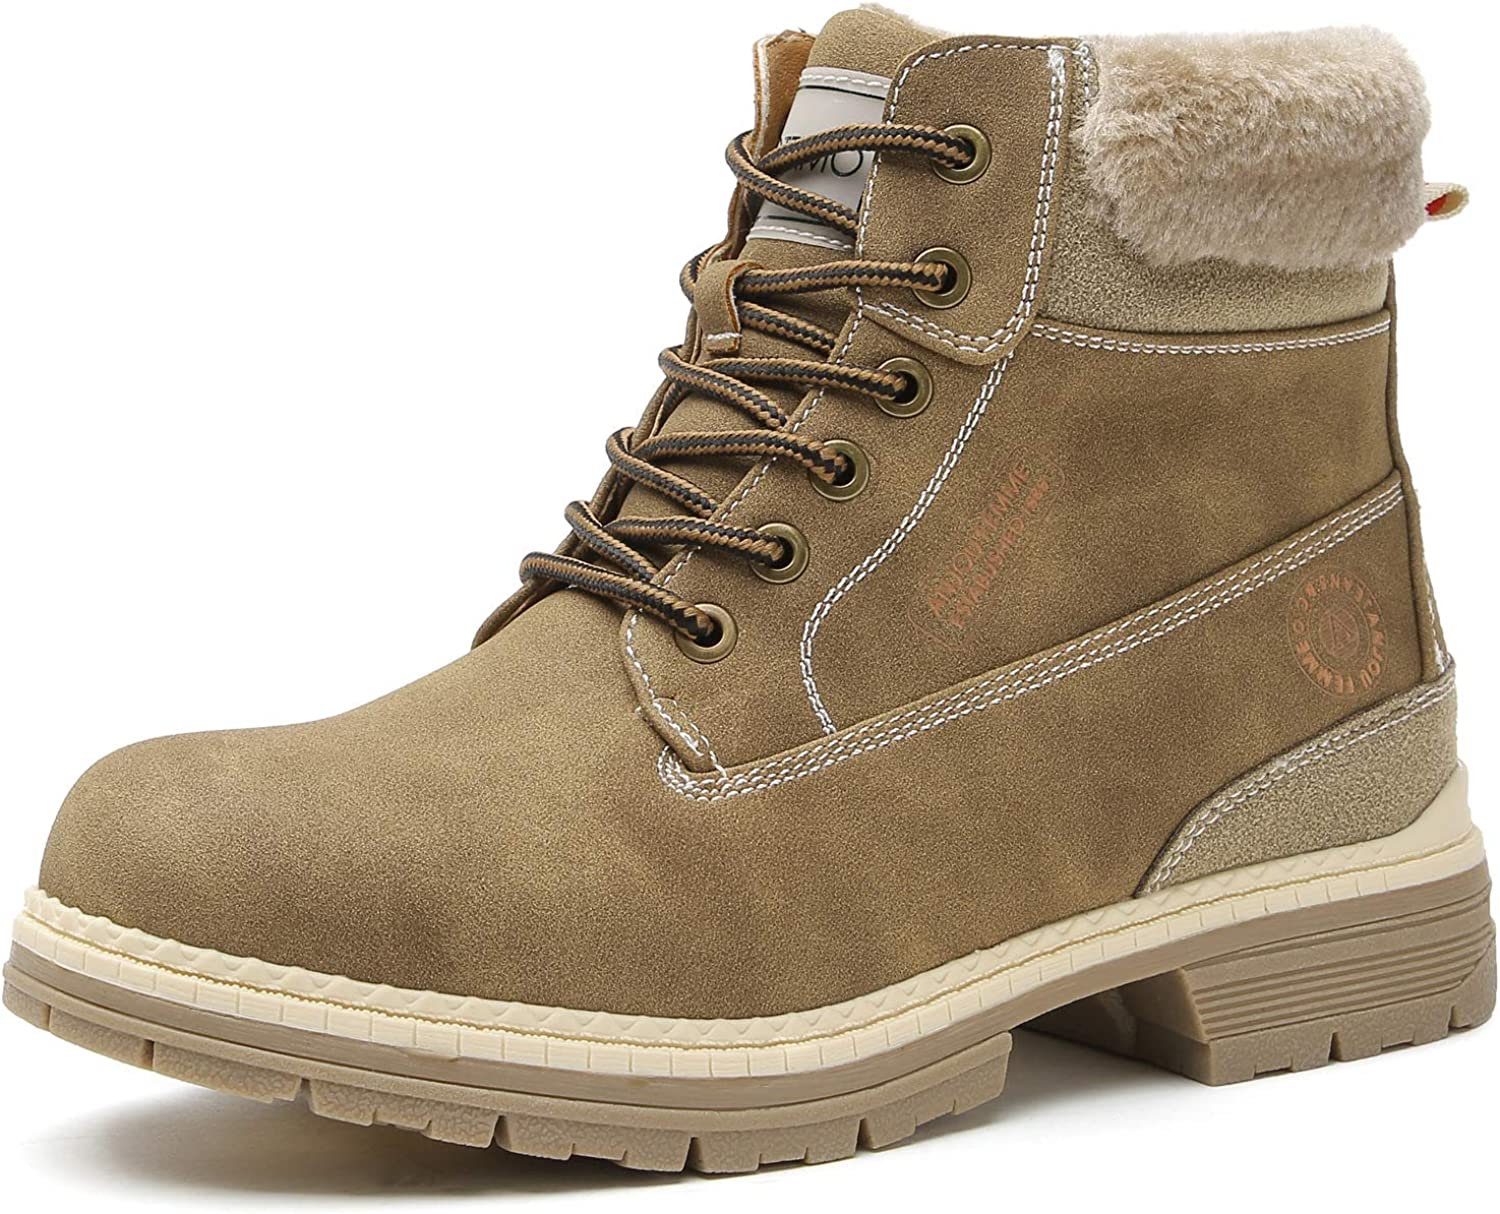 COTTIMO Winter Fur-Lined Hiking Boot for Women Non-Slip Snow Boots